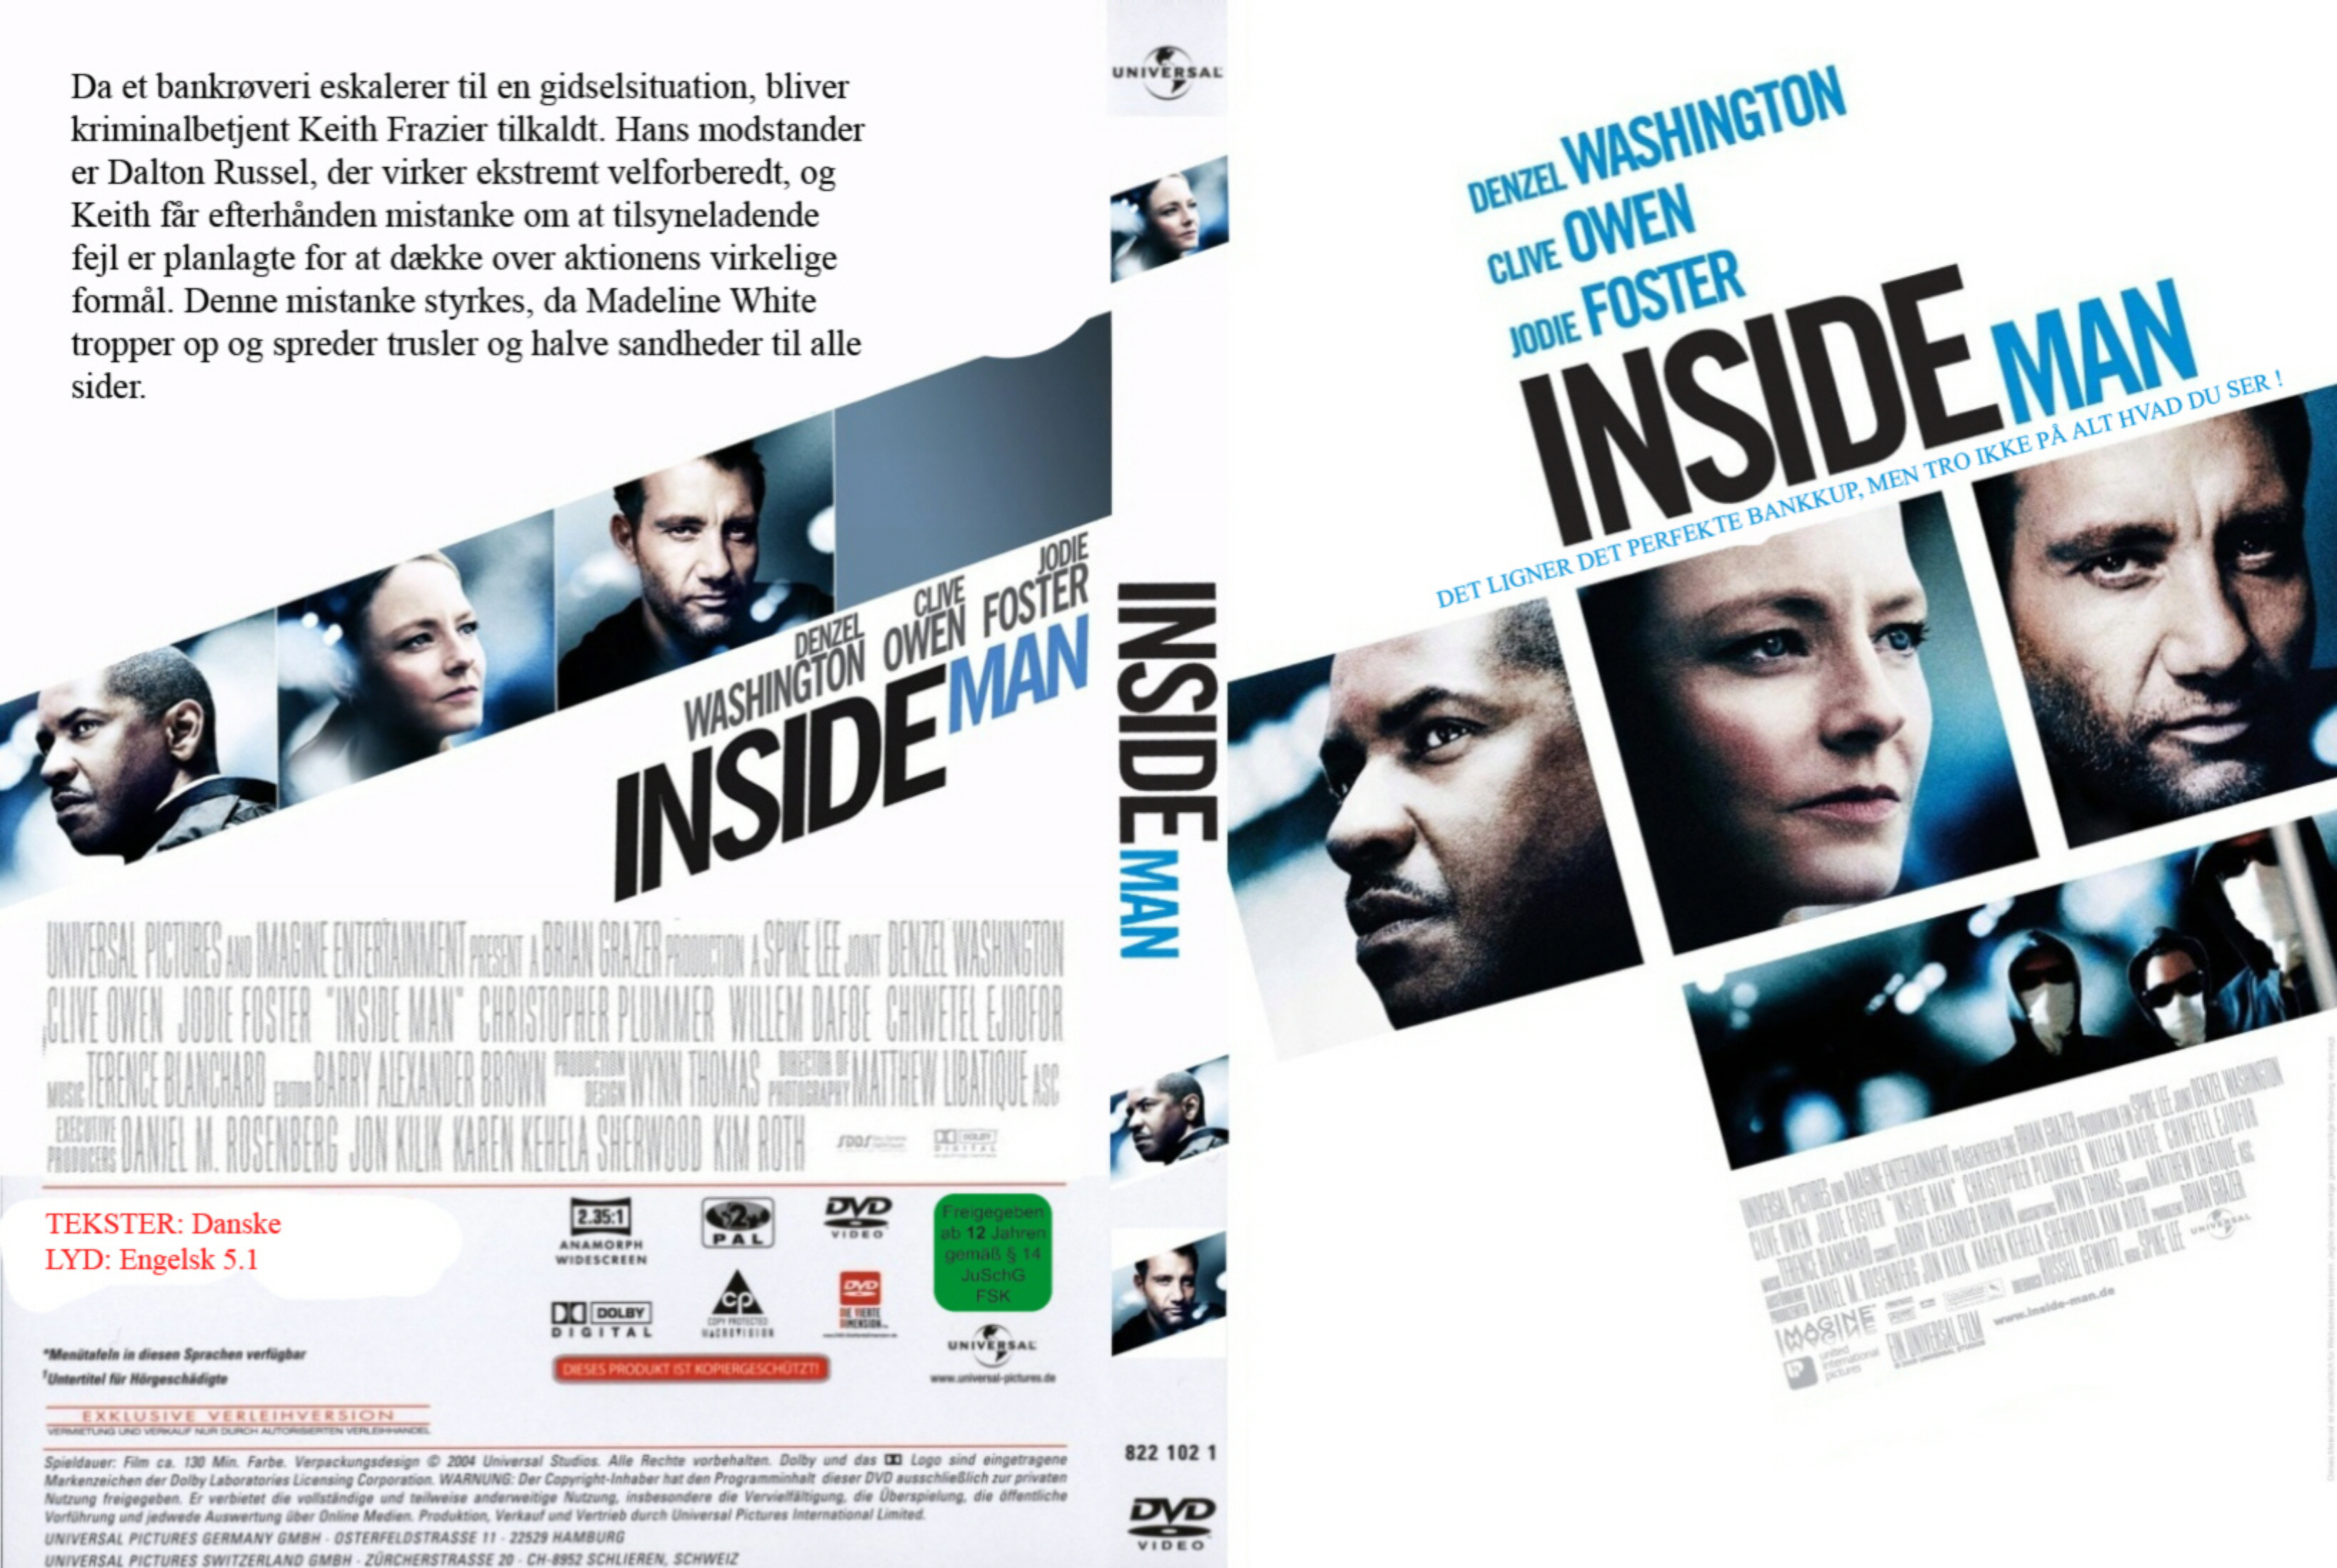 Inside man movie explanation